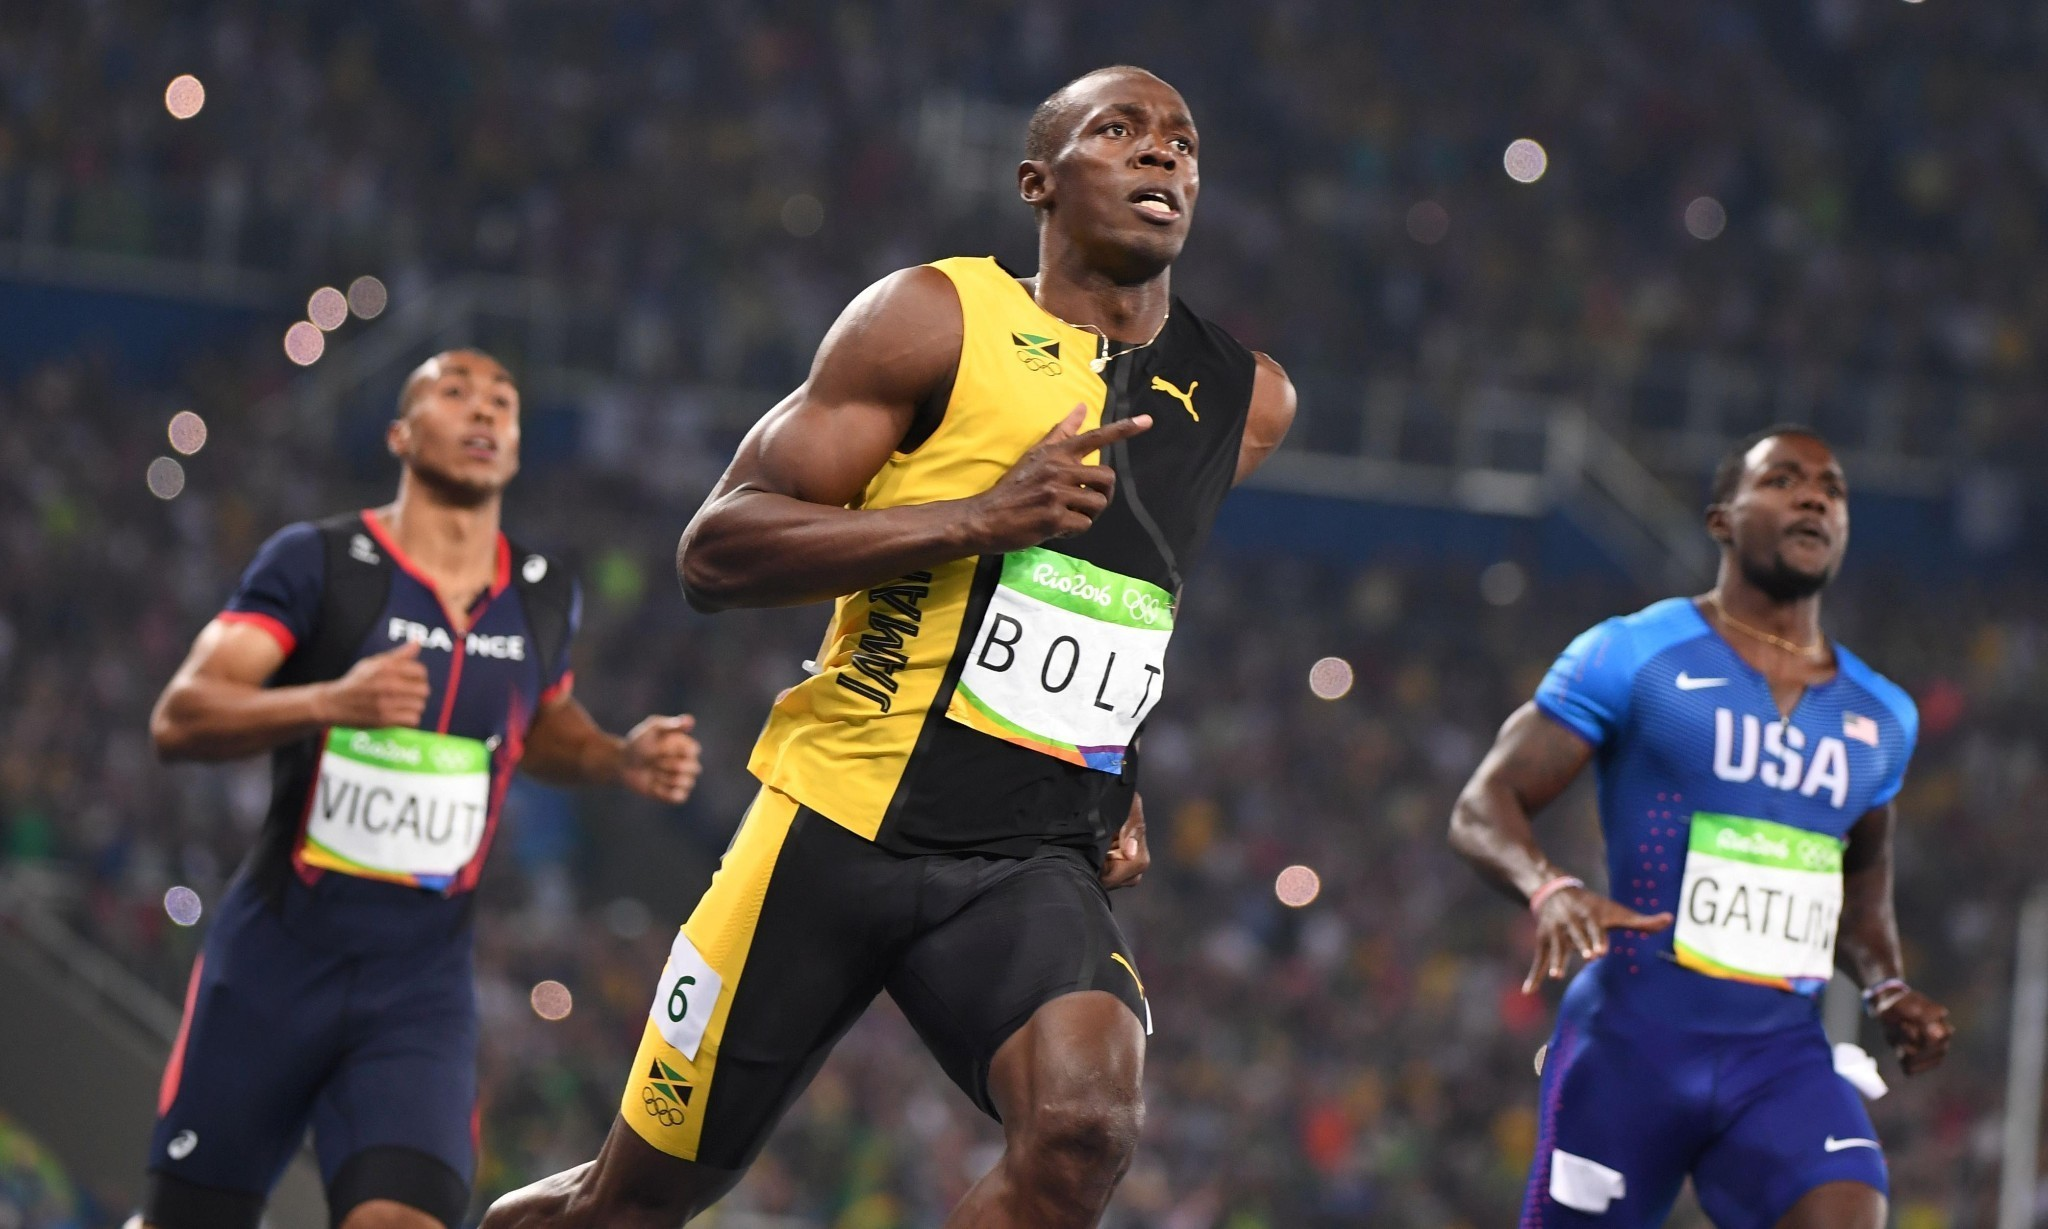 Usain Bolt surges past Justin Gatlin to win historic Olympic 100m gold in Rio